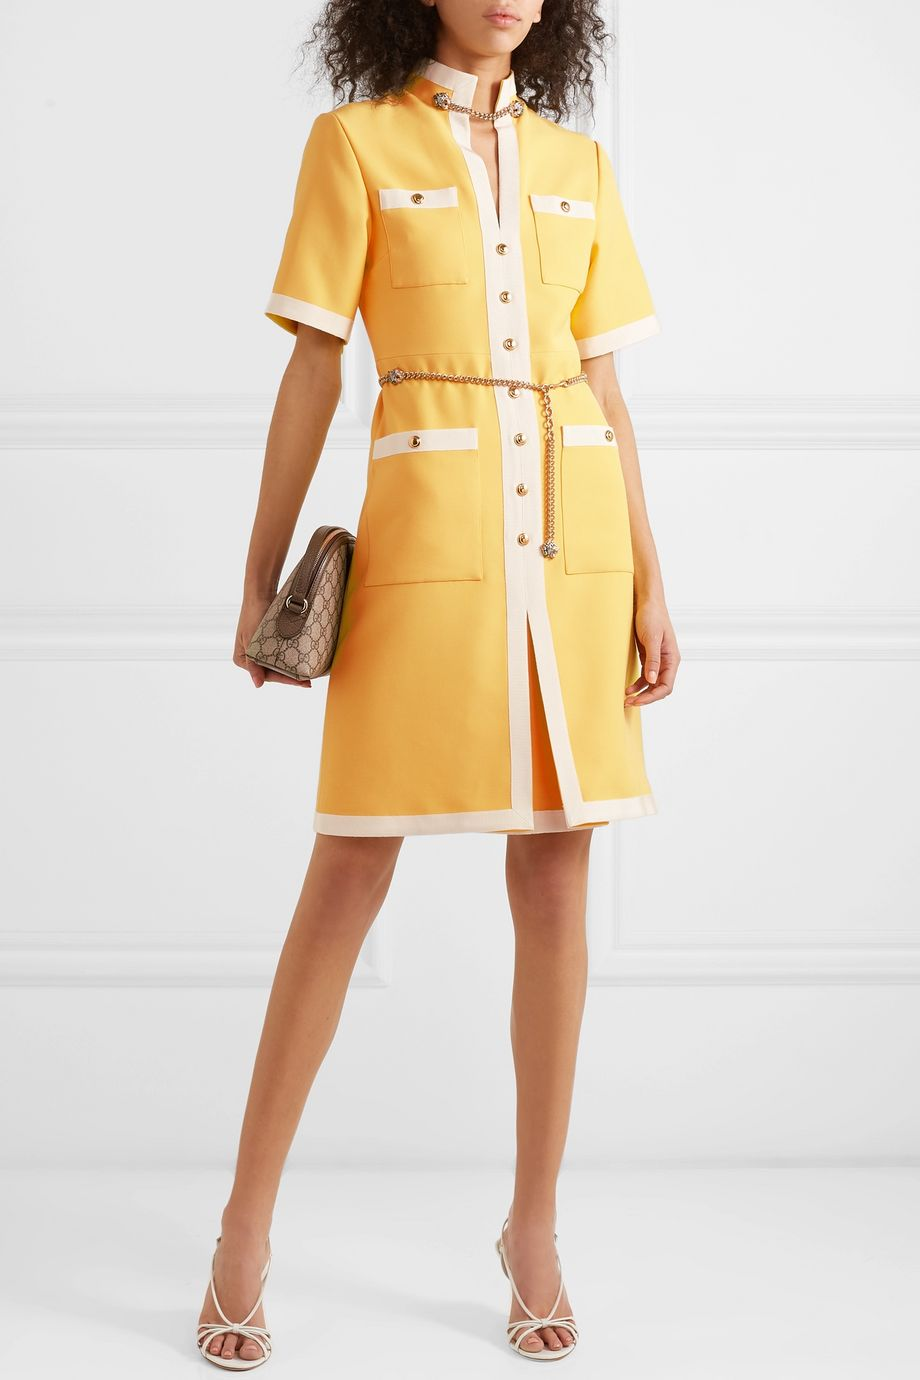 Gucci Grosgrain-trimmed wool and silk-blend dress